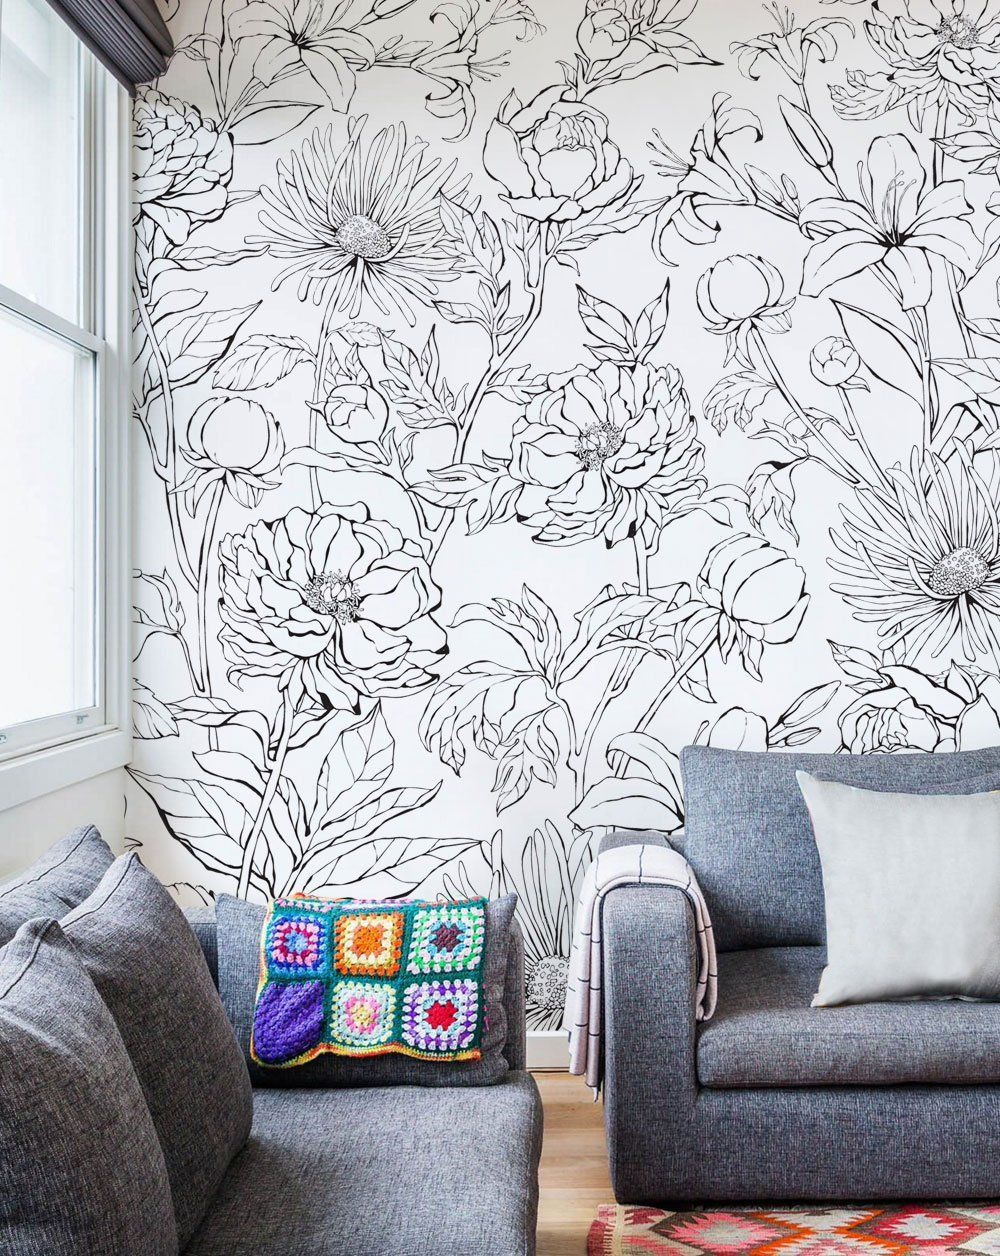 Botanical Garden Hand Drawn Flowers Mural Wall Art Wallpaper Peel And Stick Simple Shapes Mural Wall Art Room Wall Art Flower Mural